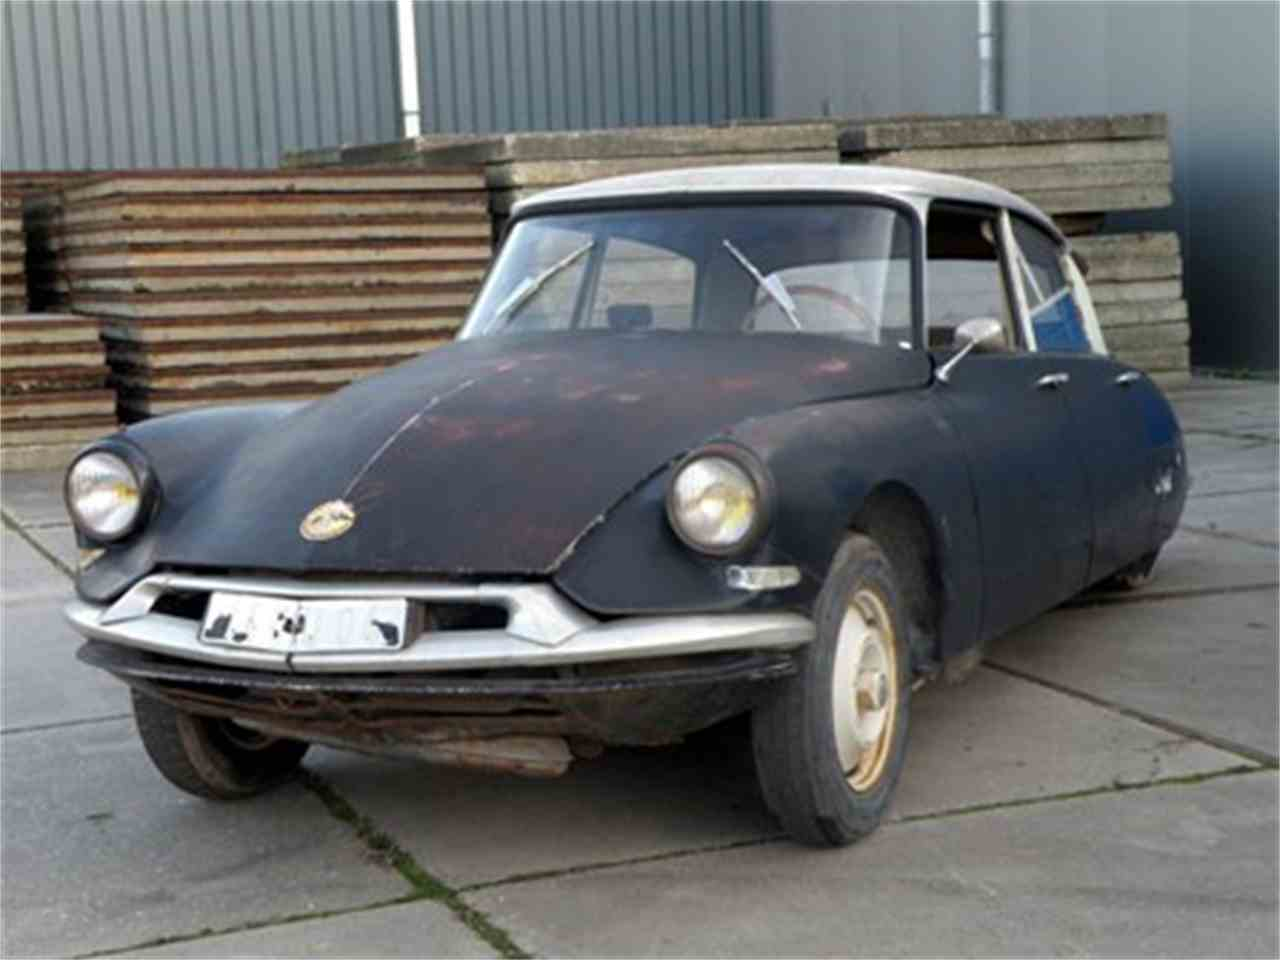 Large Picture of '58 Citroen ID19 - $17,400.00 - MBJG